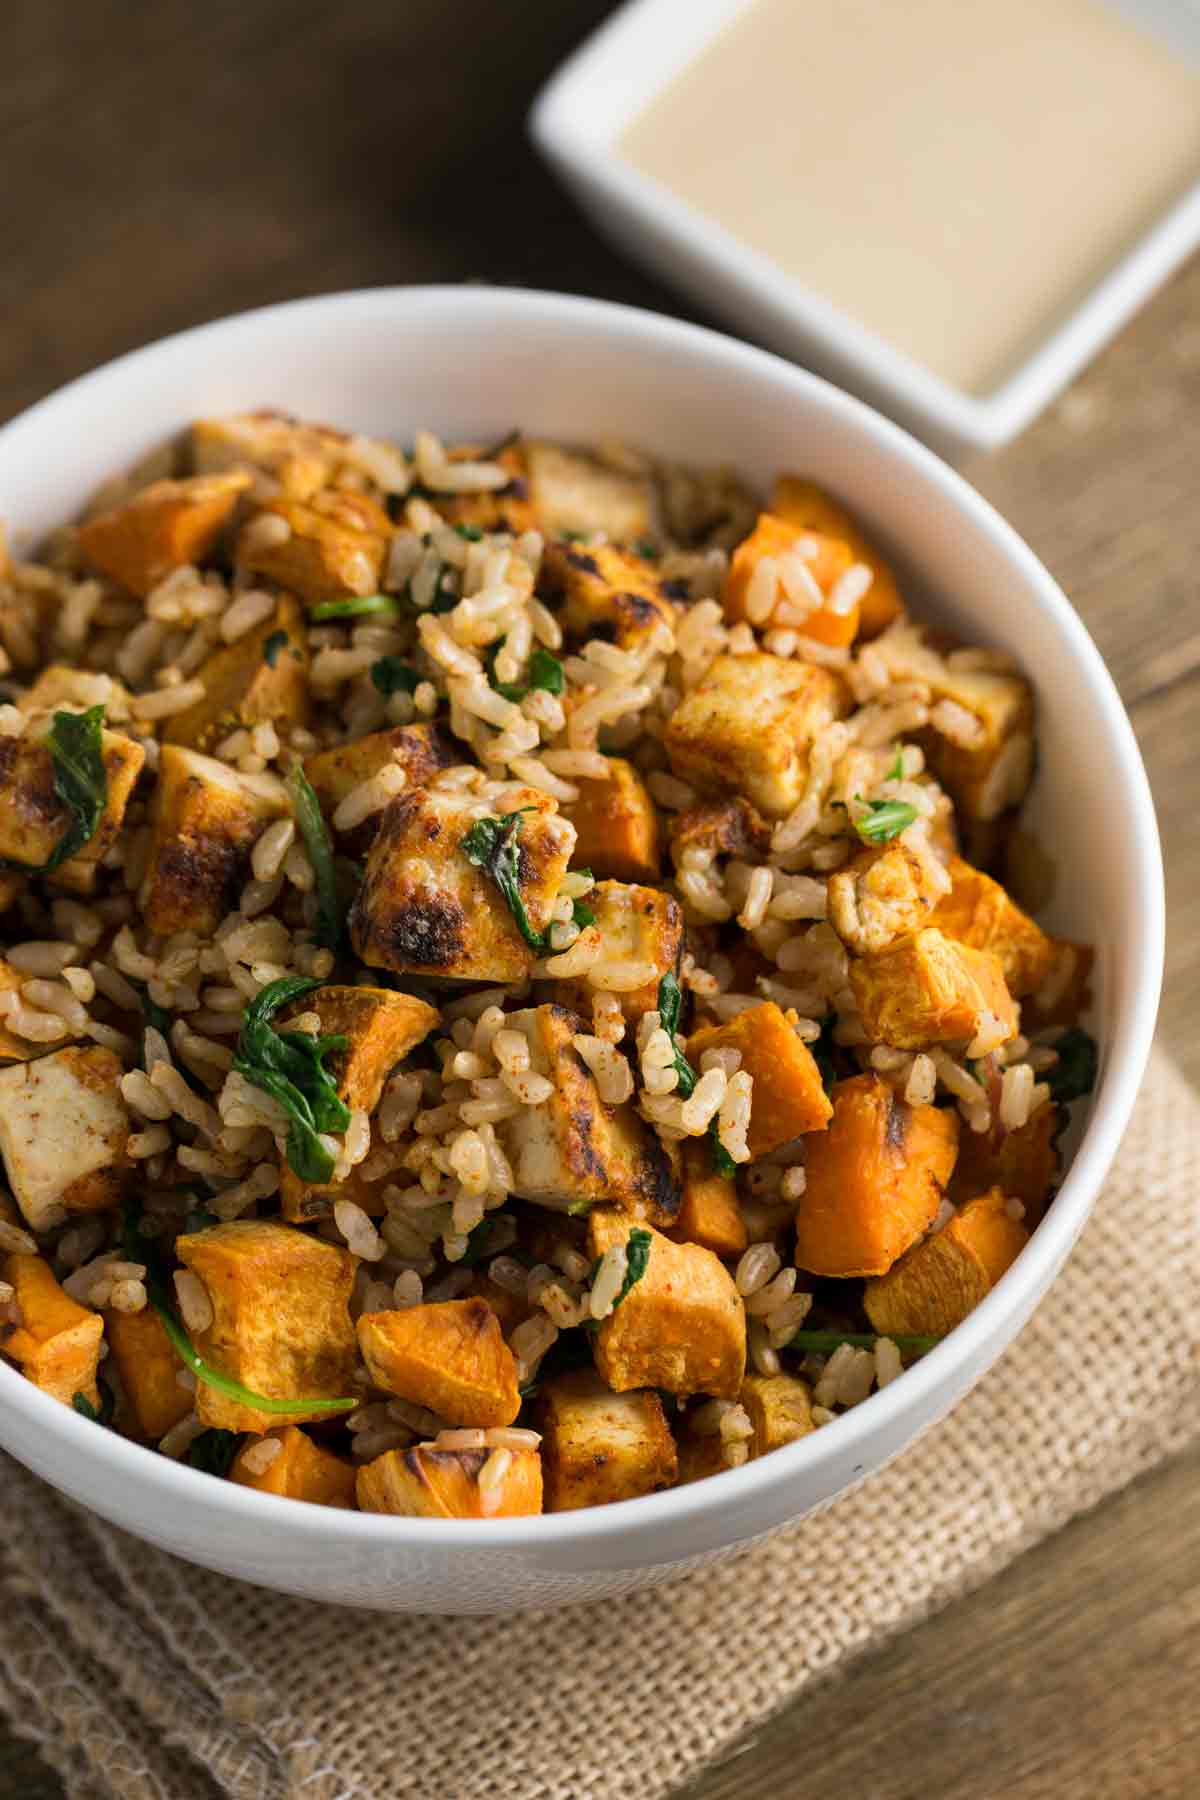 Tofu Sweet Potato Bowl with sweet tahini sauce on the side.